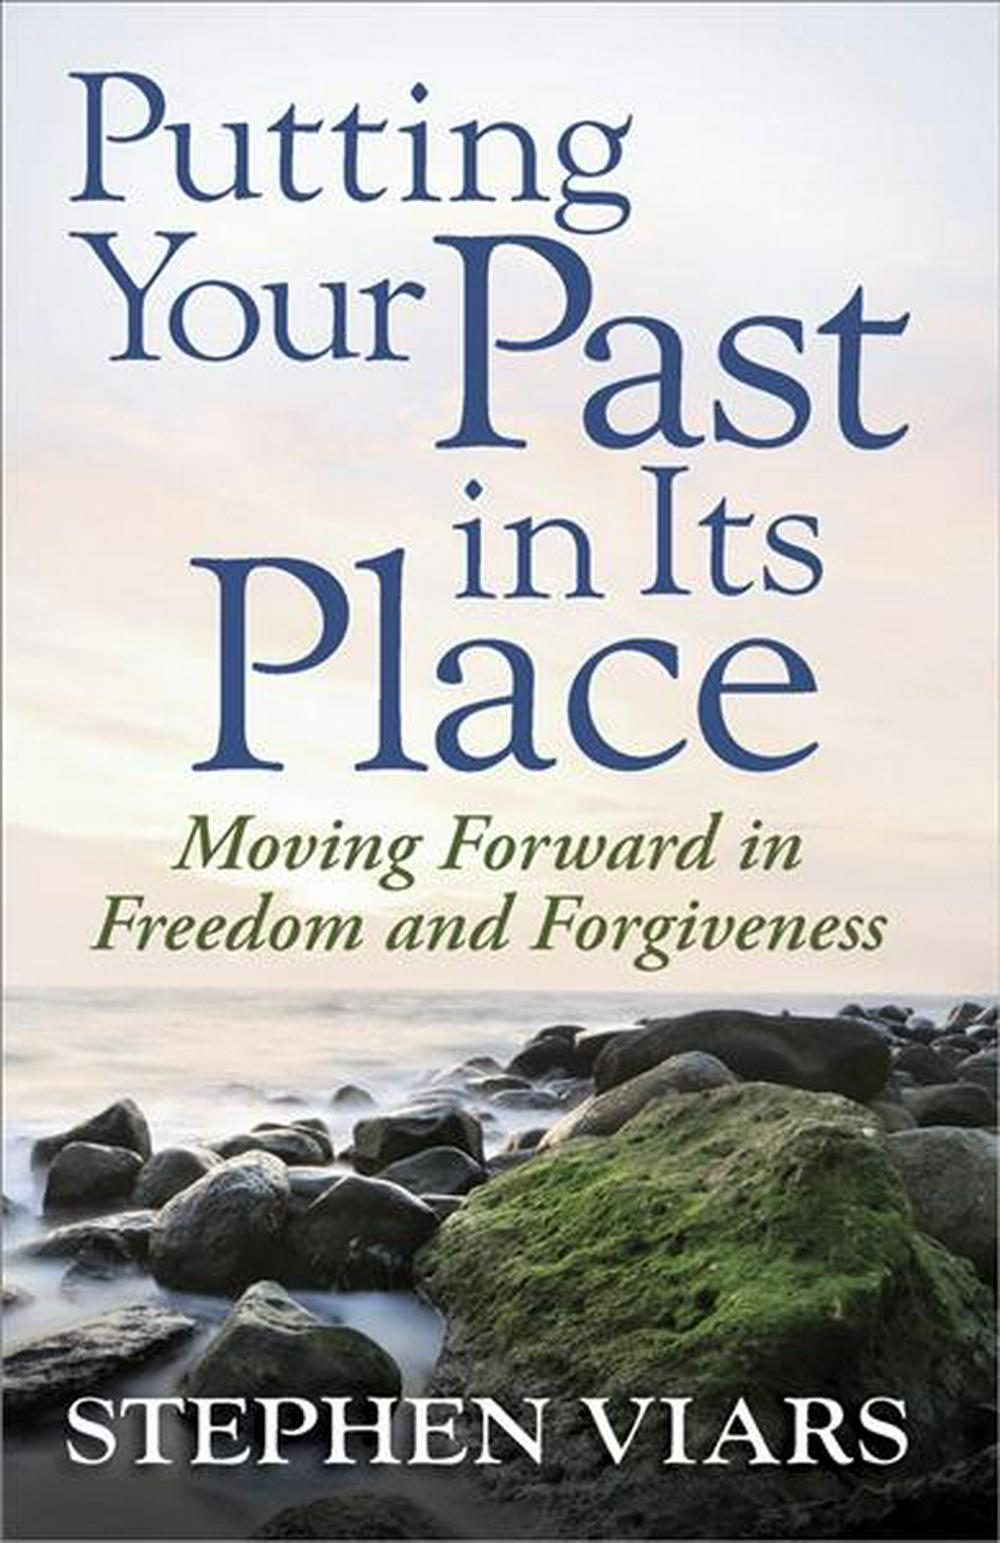 Putting Your Past in Its Place by Stephen Viars, ISBN: 9780736927390